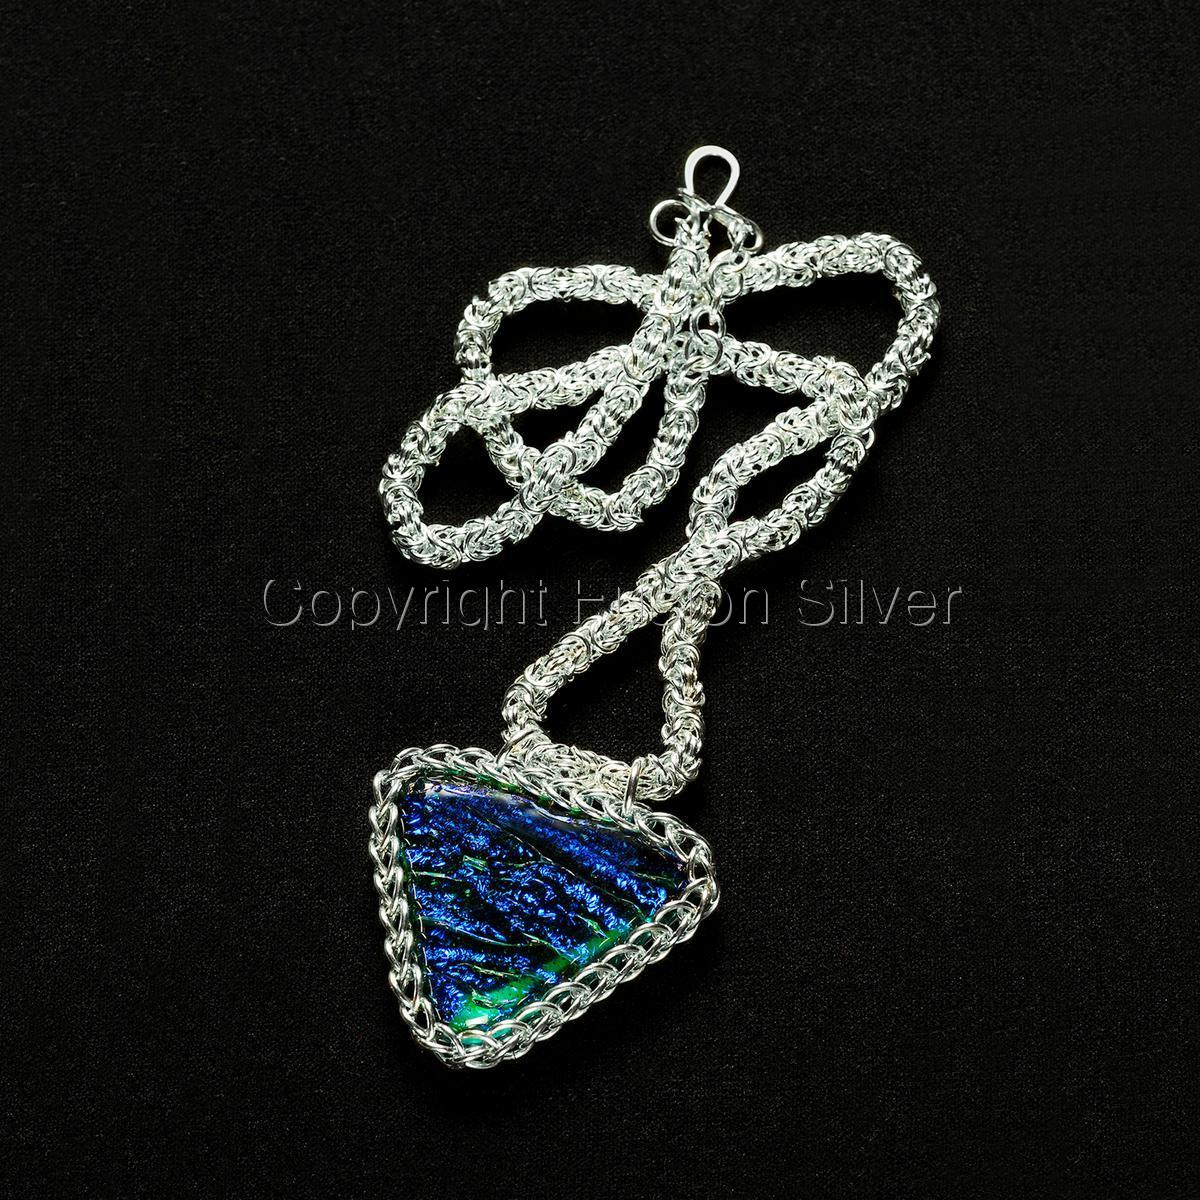 Byzantine Necklace with Dichroic Glass Pendant (large view)